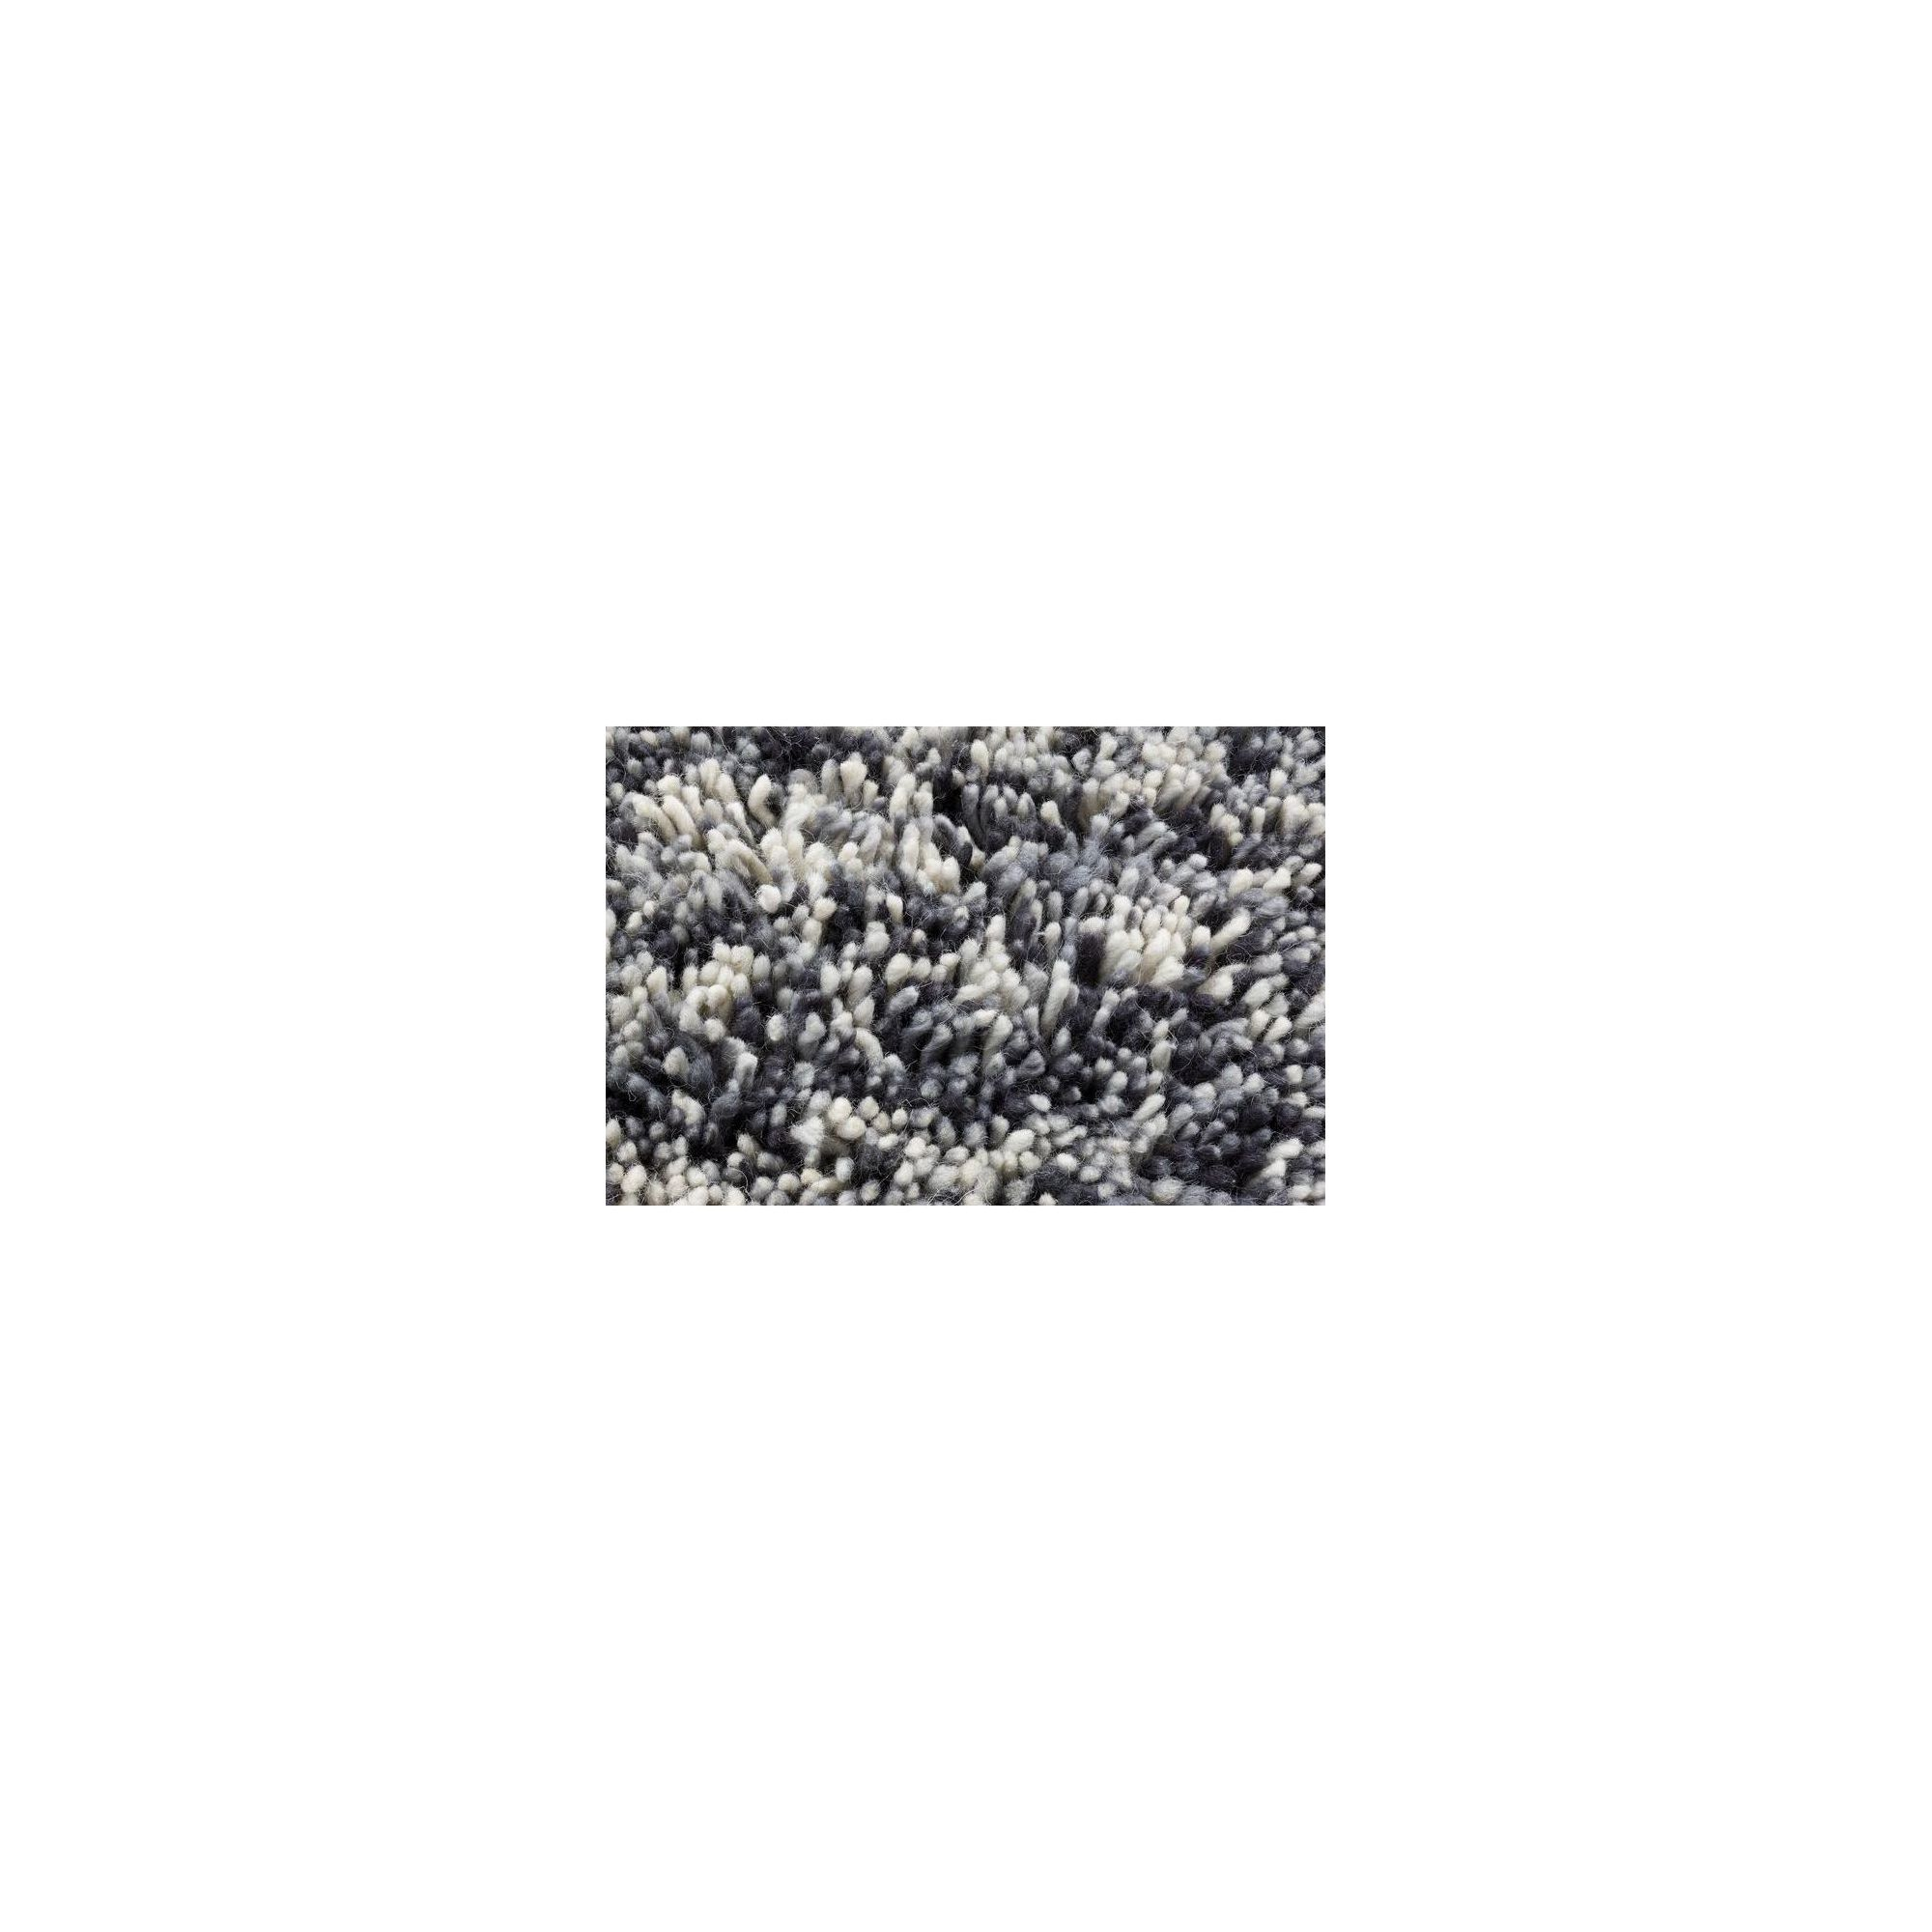 Linie Design Coral Granite Shag Rug - 300cm x 200cm at Tesco Direct